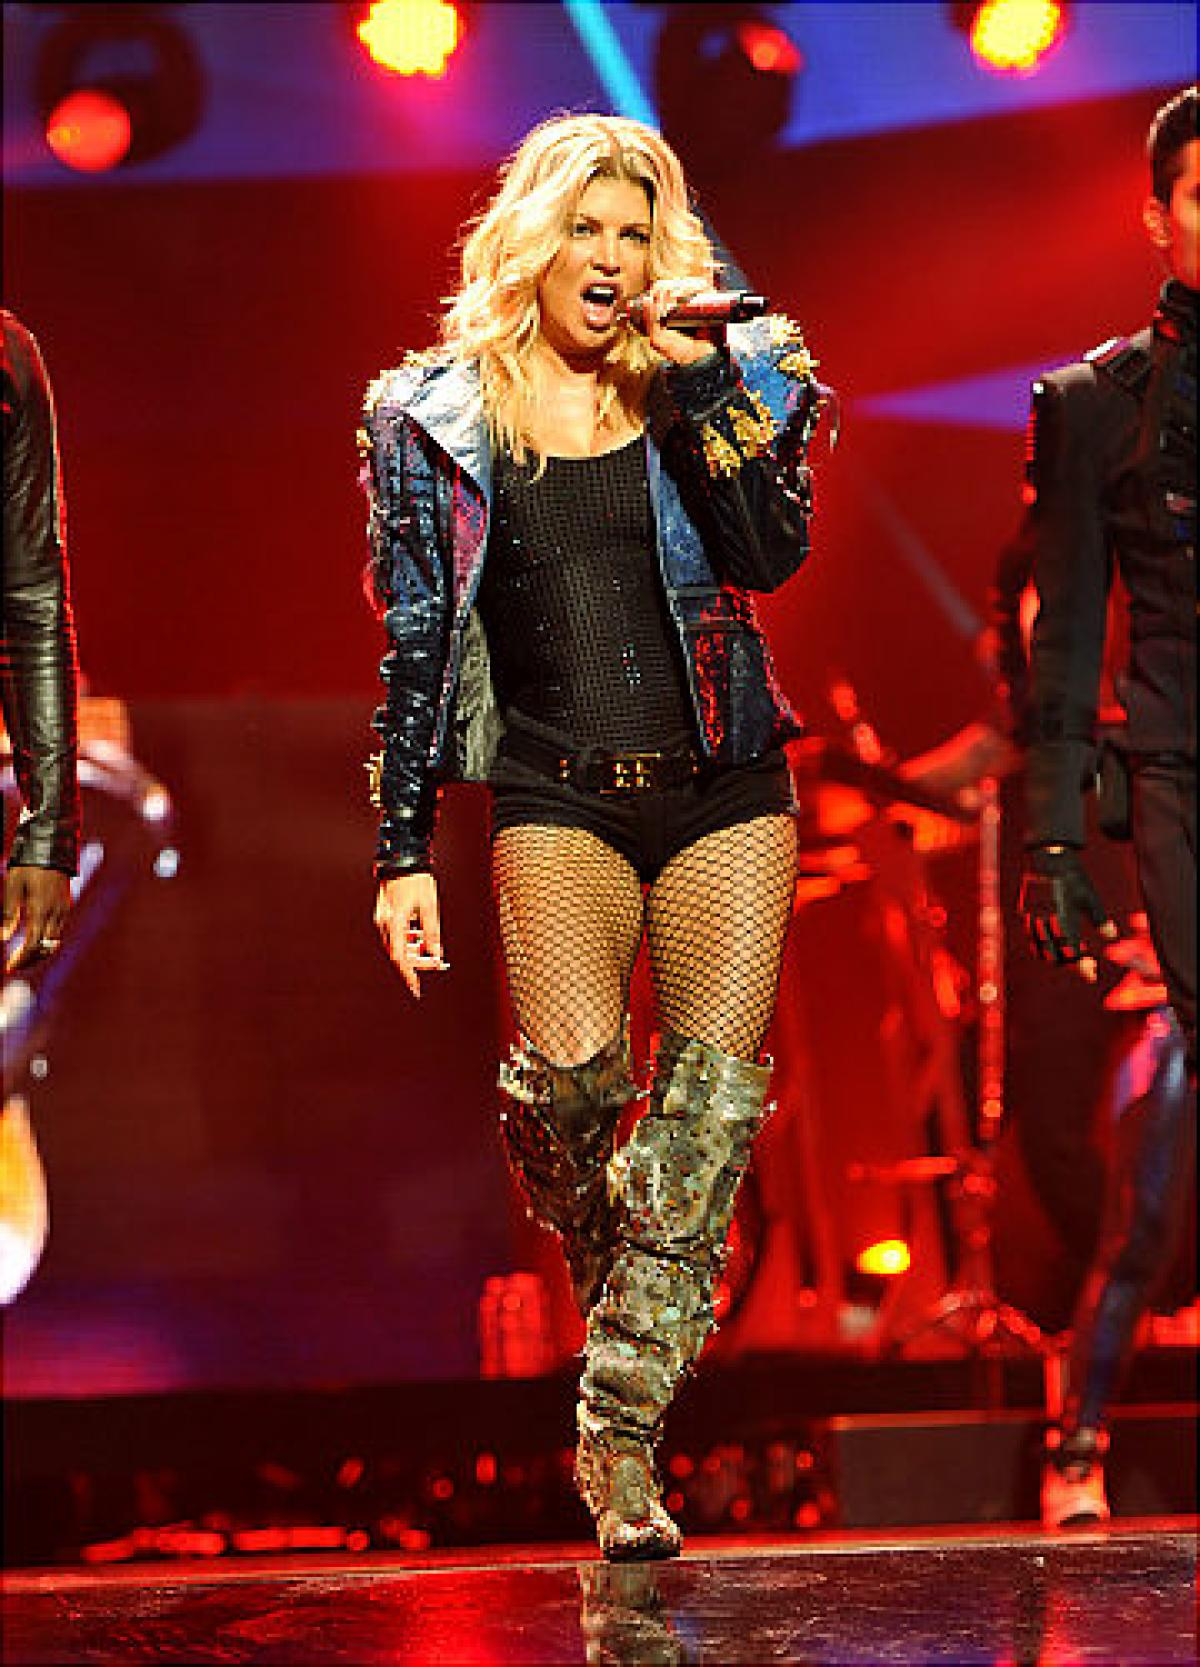 fergie boots fergie - photos - trend alert: thigh high boots are back - ny daily news mvzajum